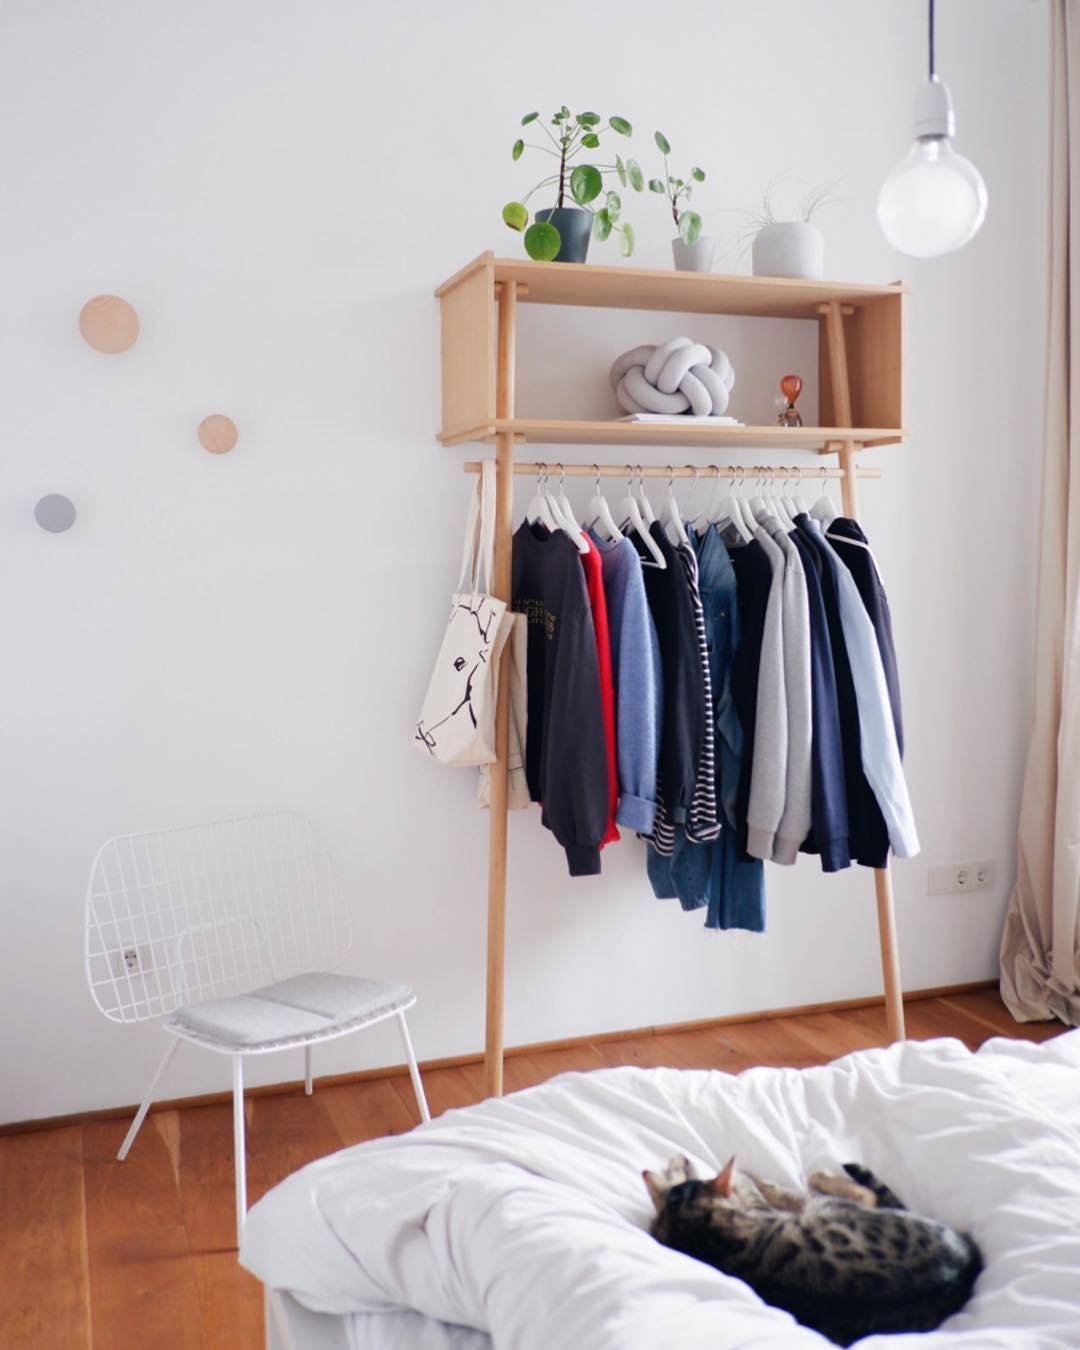 Declutter Your Space With These Styling Tips For A Peaceful Minimalist Home